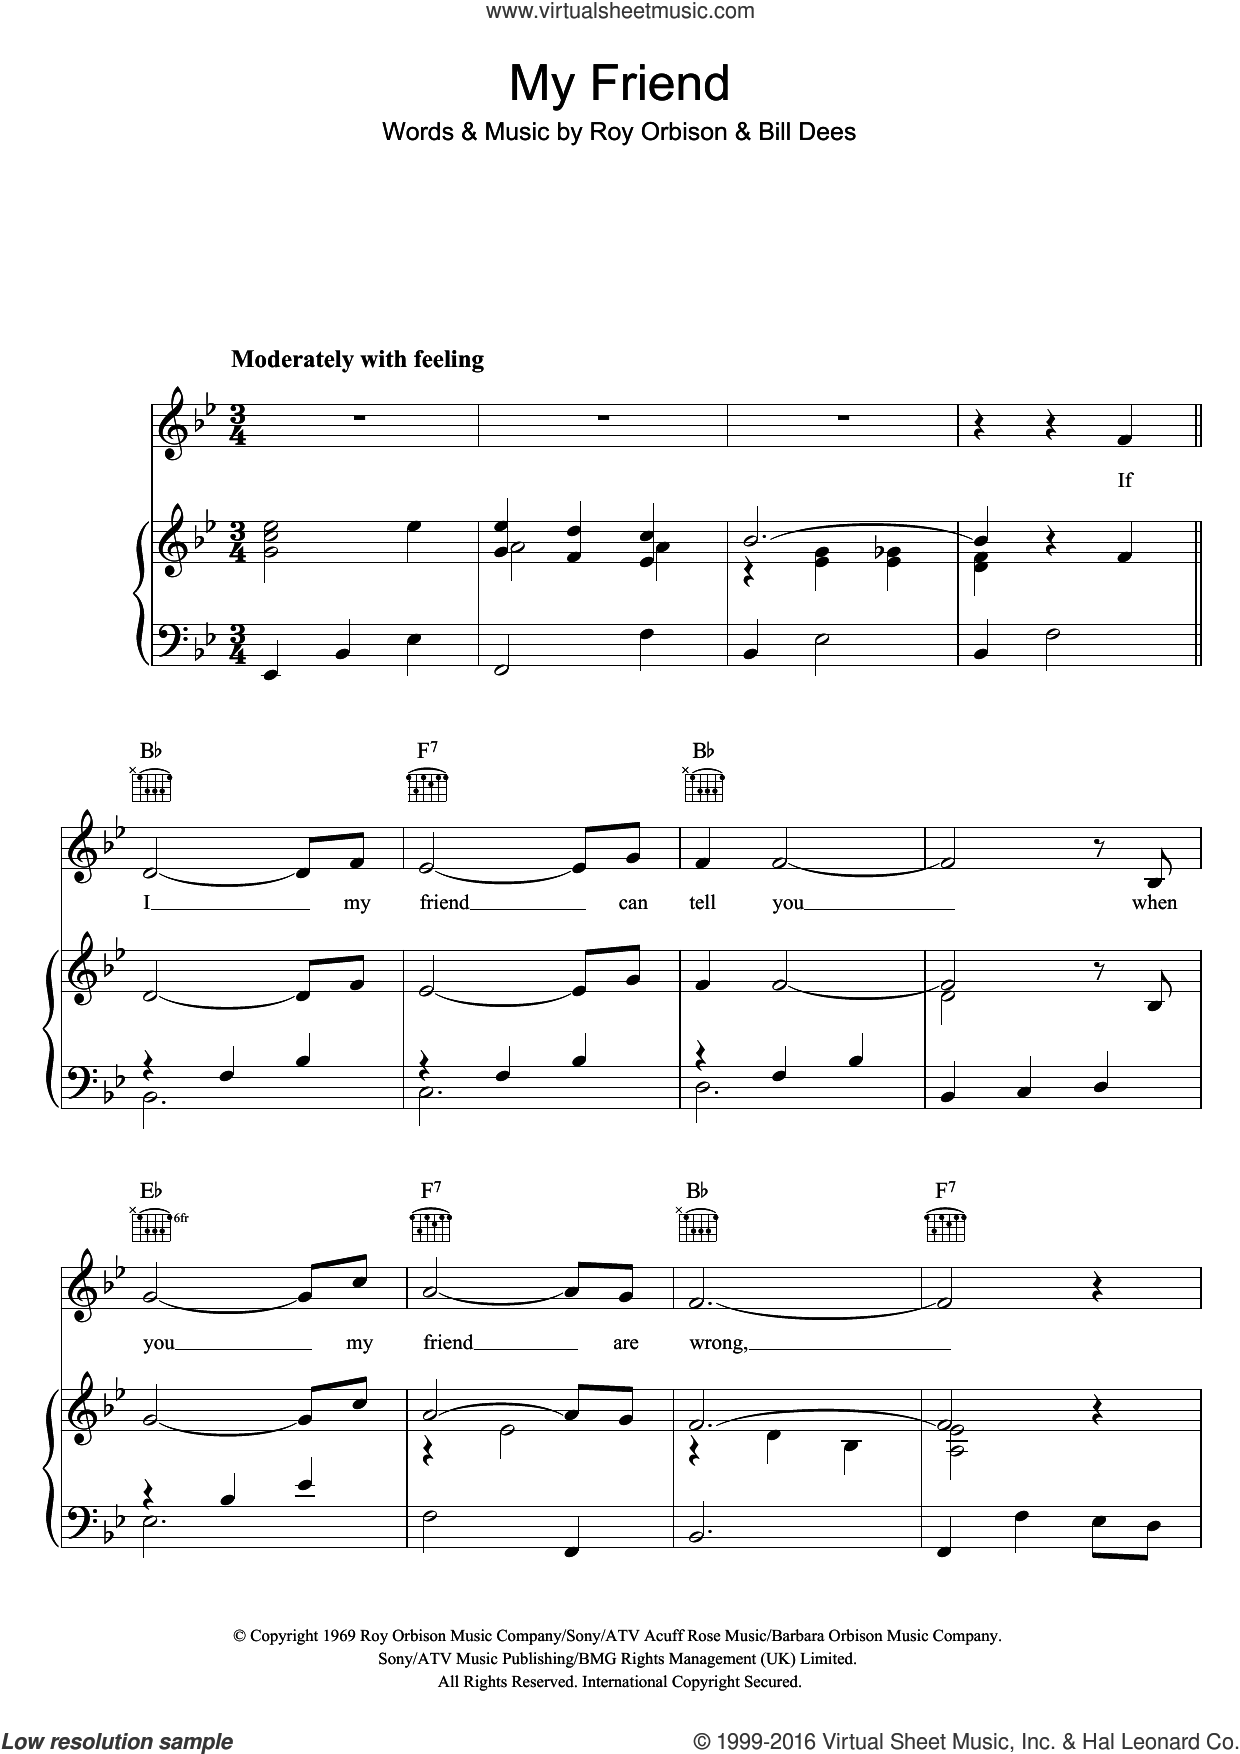 My Friend sheet music for voice, piano or guitar by Roy Orbison. Score Image Preview.